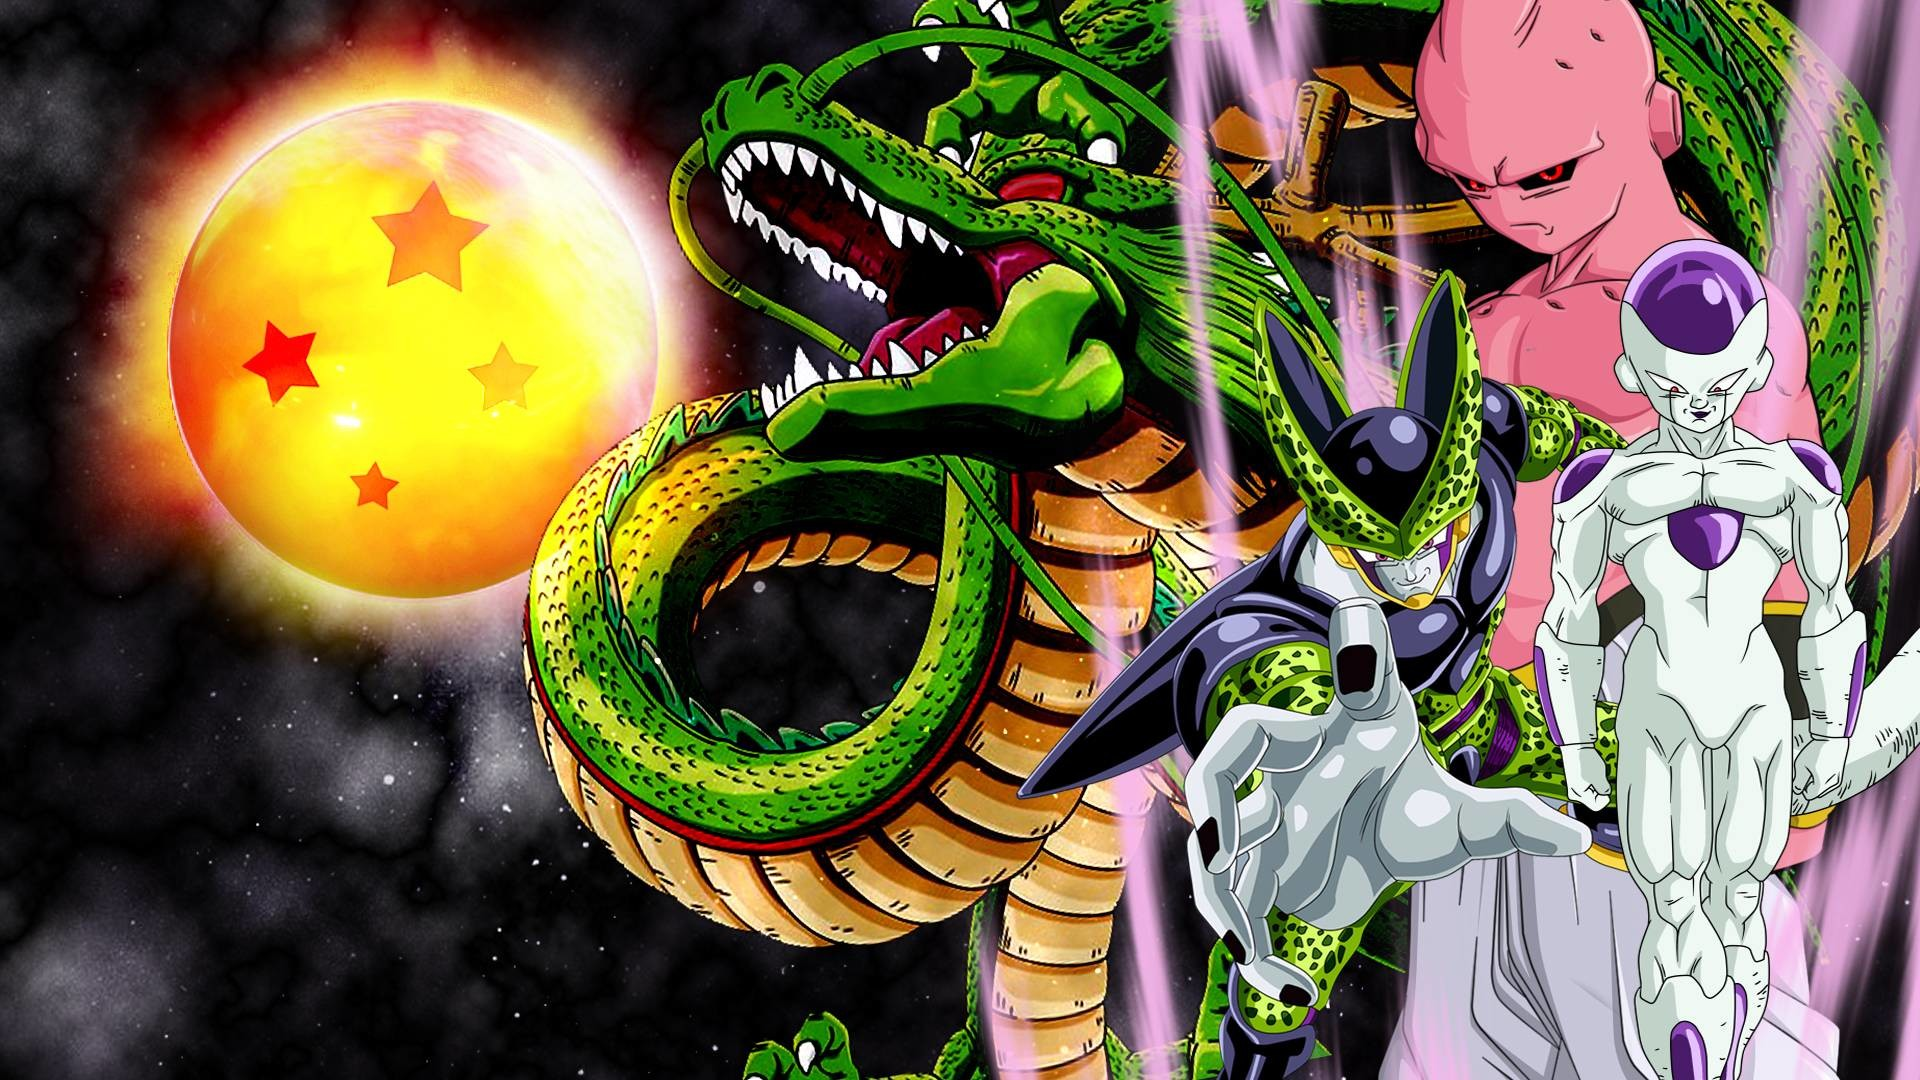 Frieza, cell and buu wallpaper by vuLC4no on DeviantArt